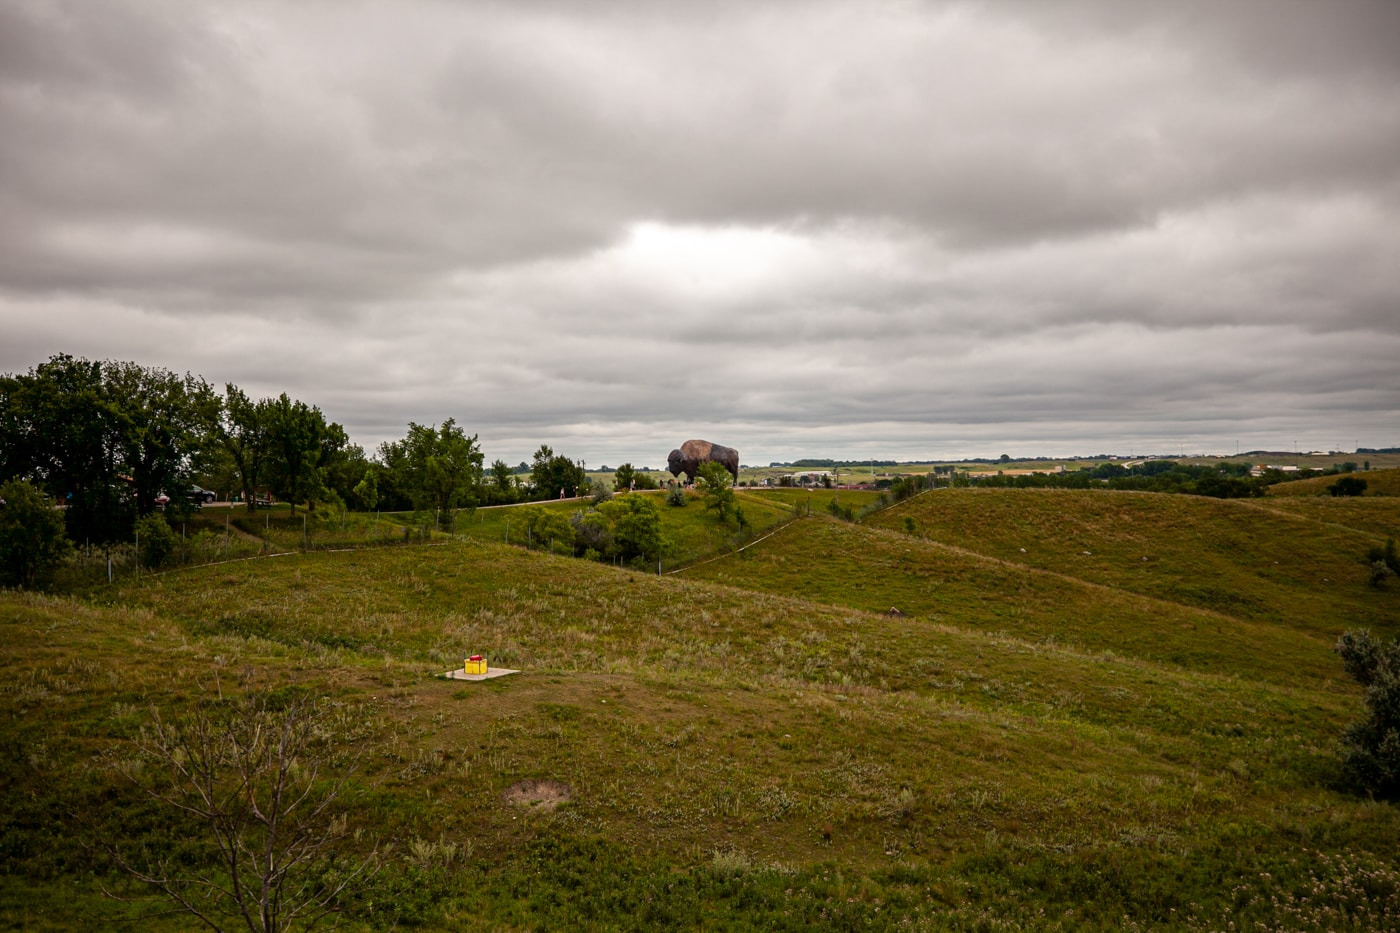 World's Largest Buffalo Monument in Jamestown, North Dakota | North Dakota Roadside Attractions